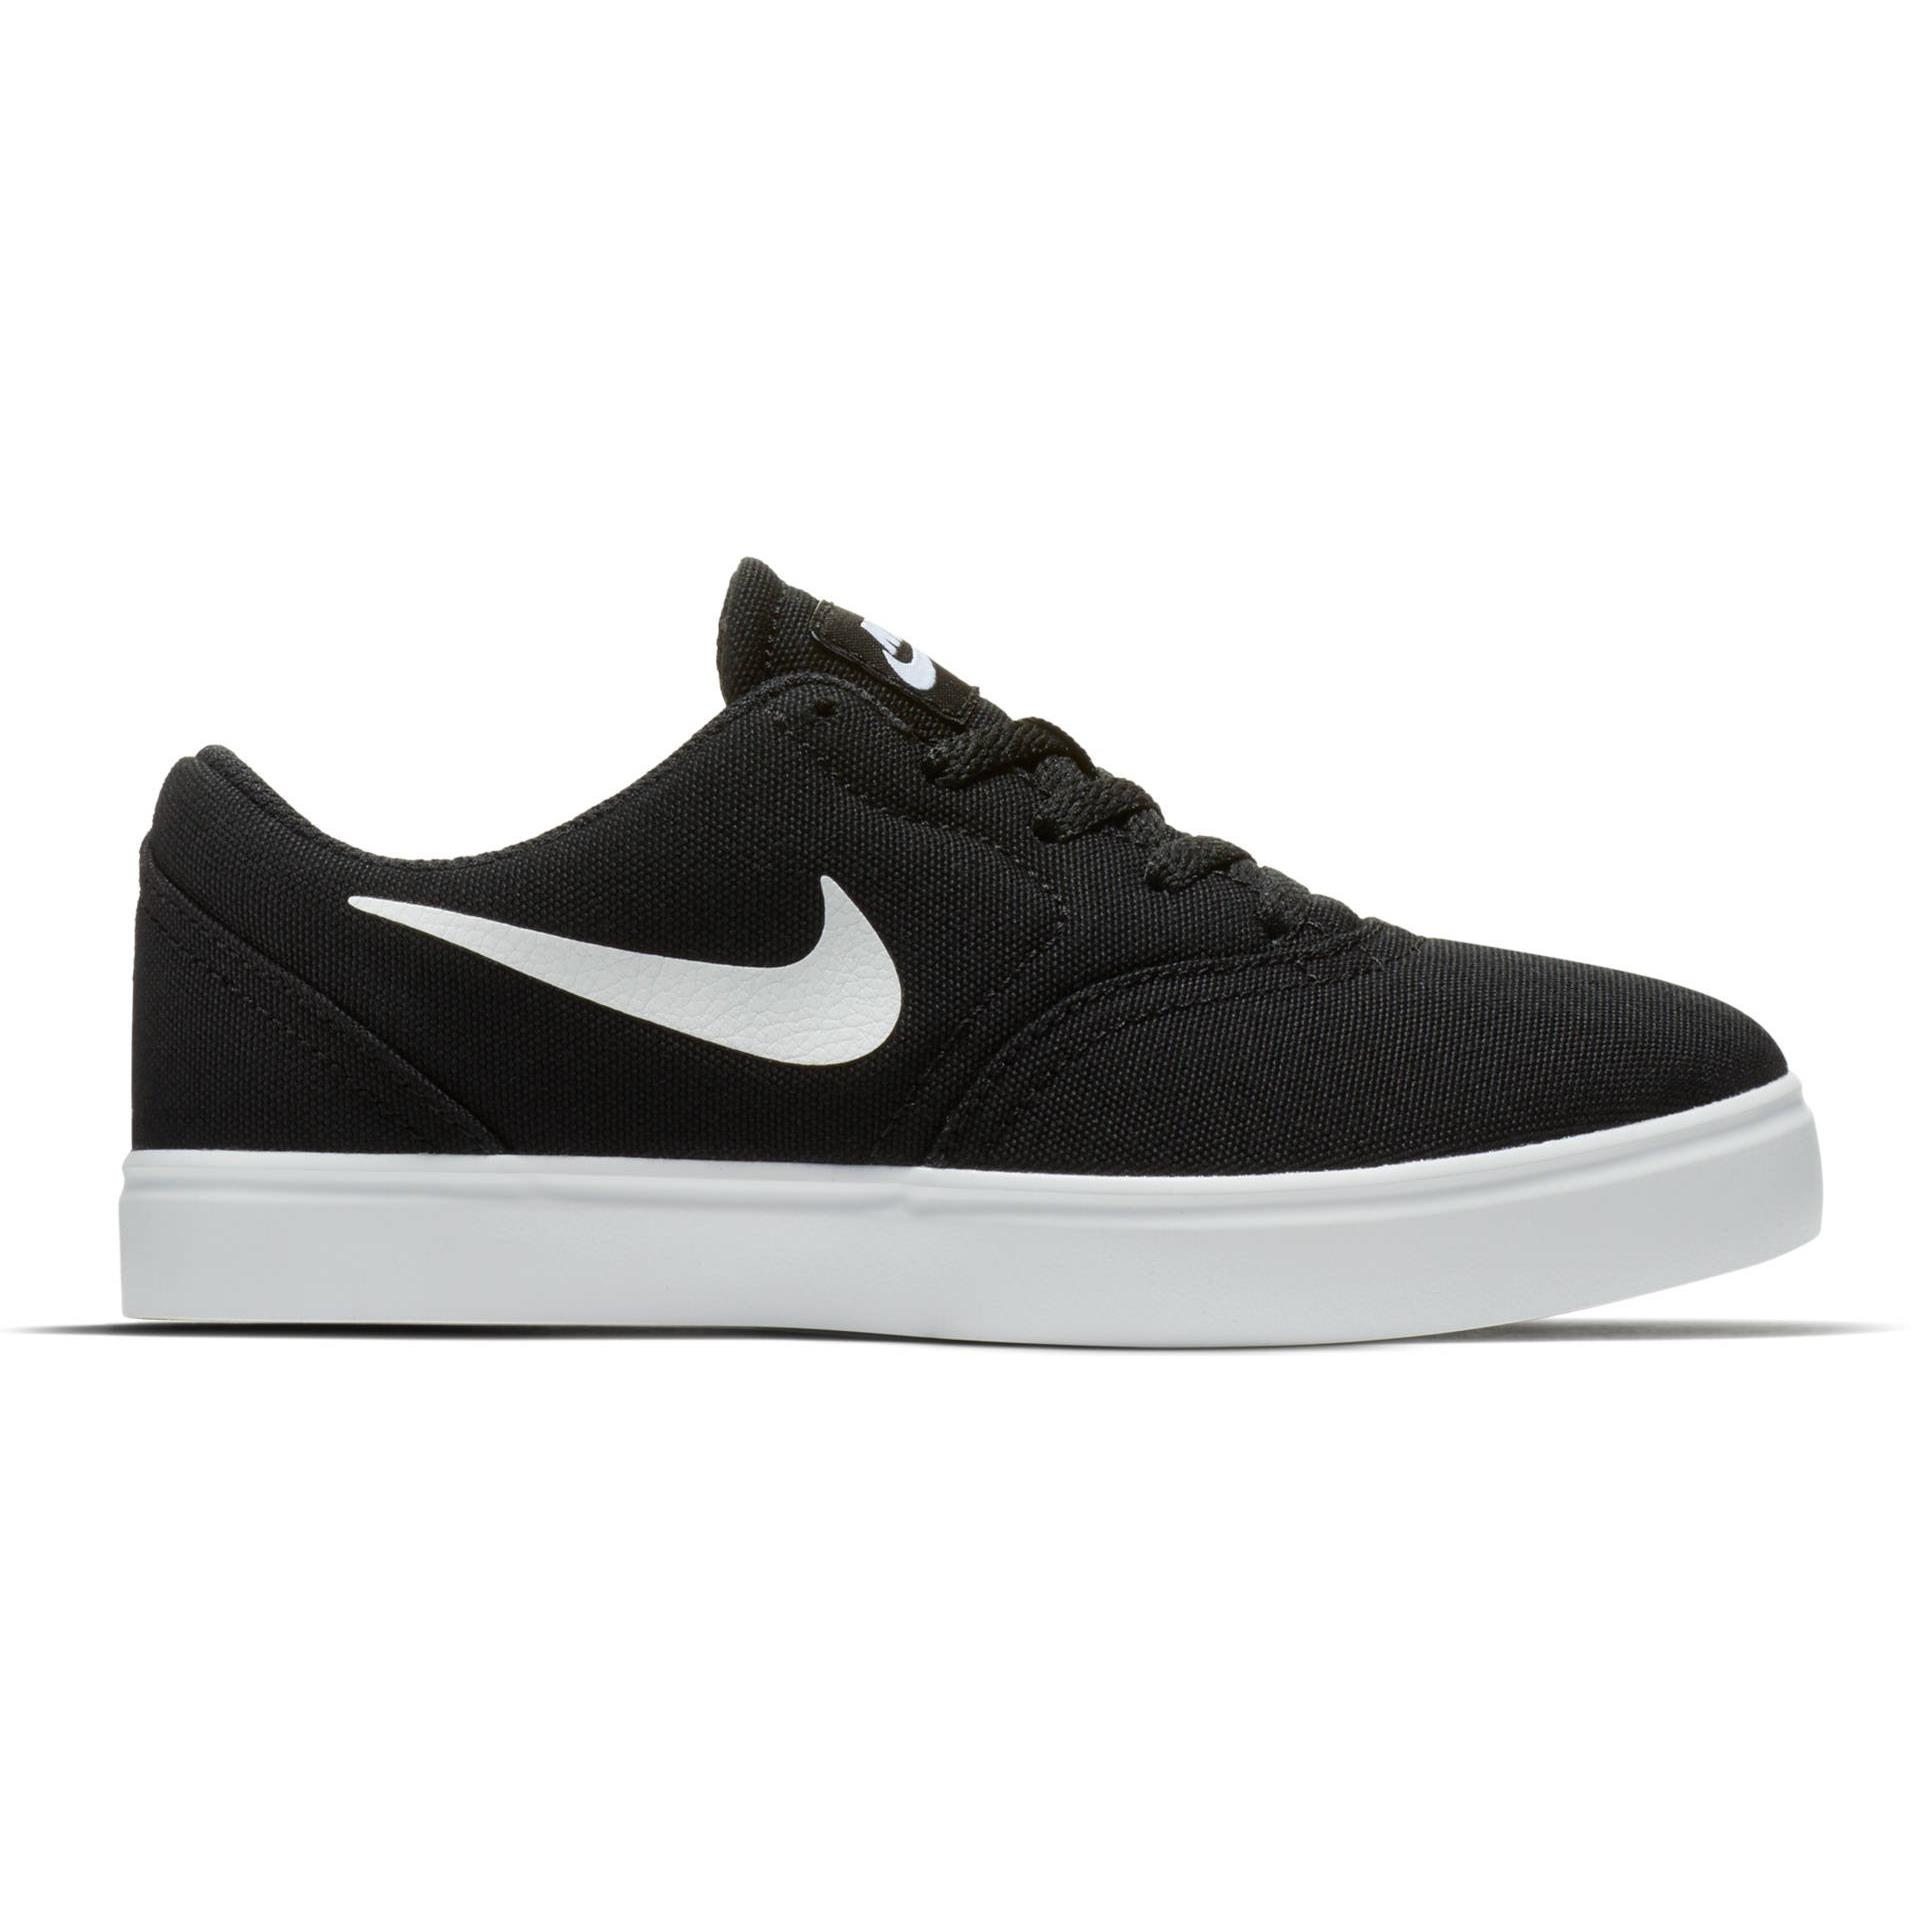 NIKE Shoes Boy Unisex NIKE SB CHECK CNVS, Free And Time Sportwear, Black White